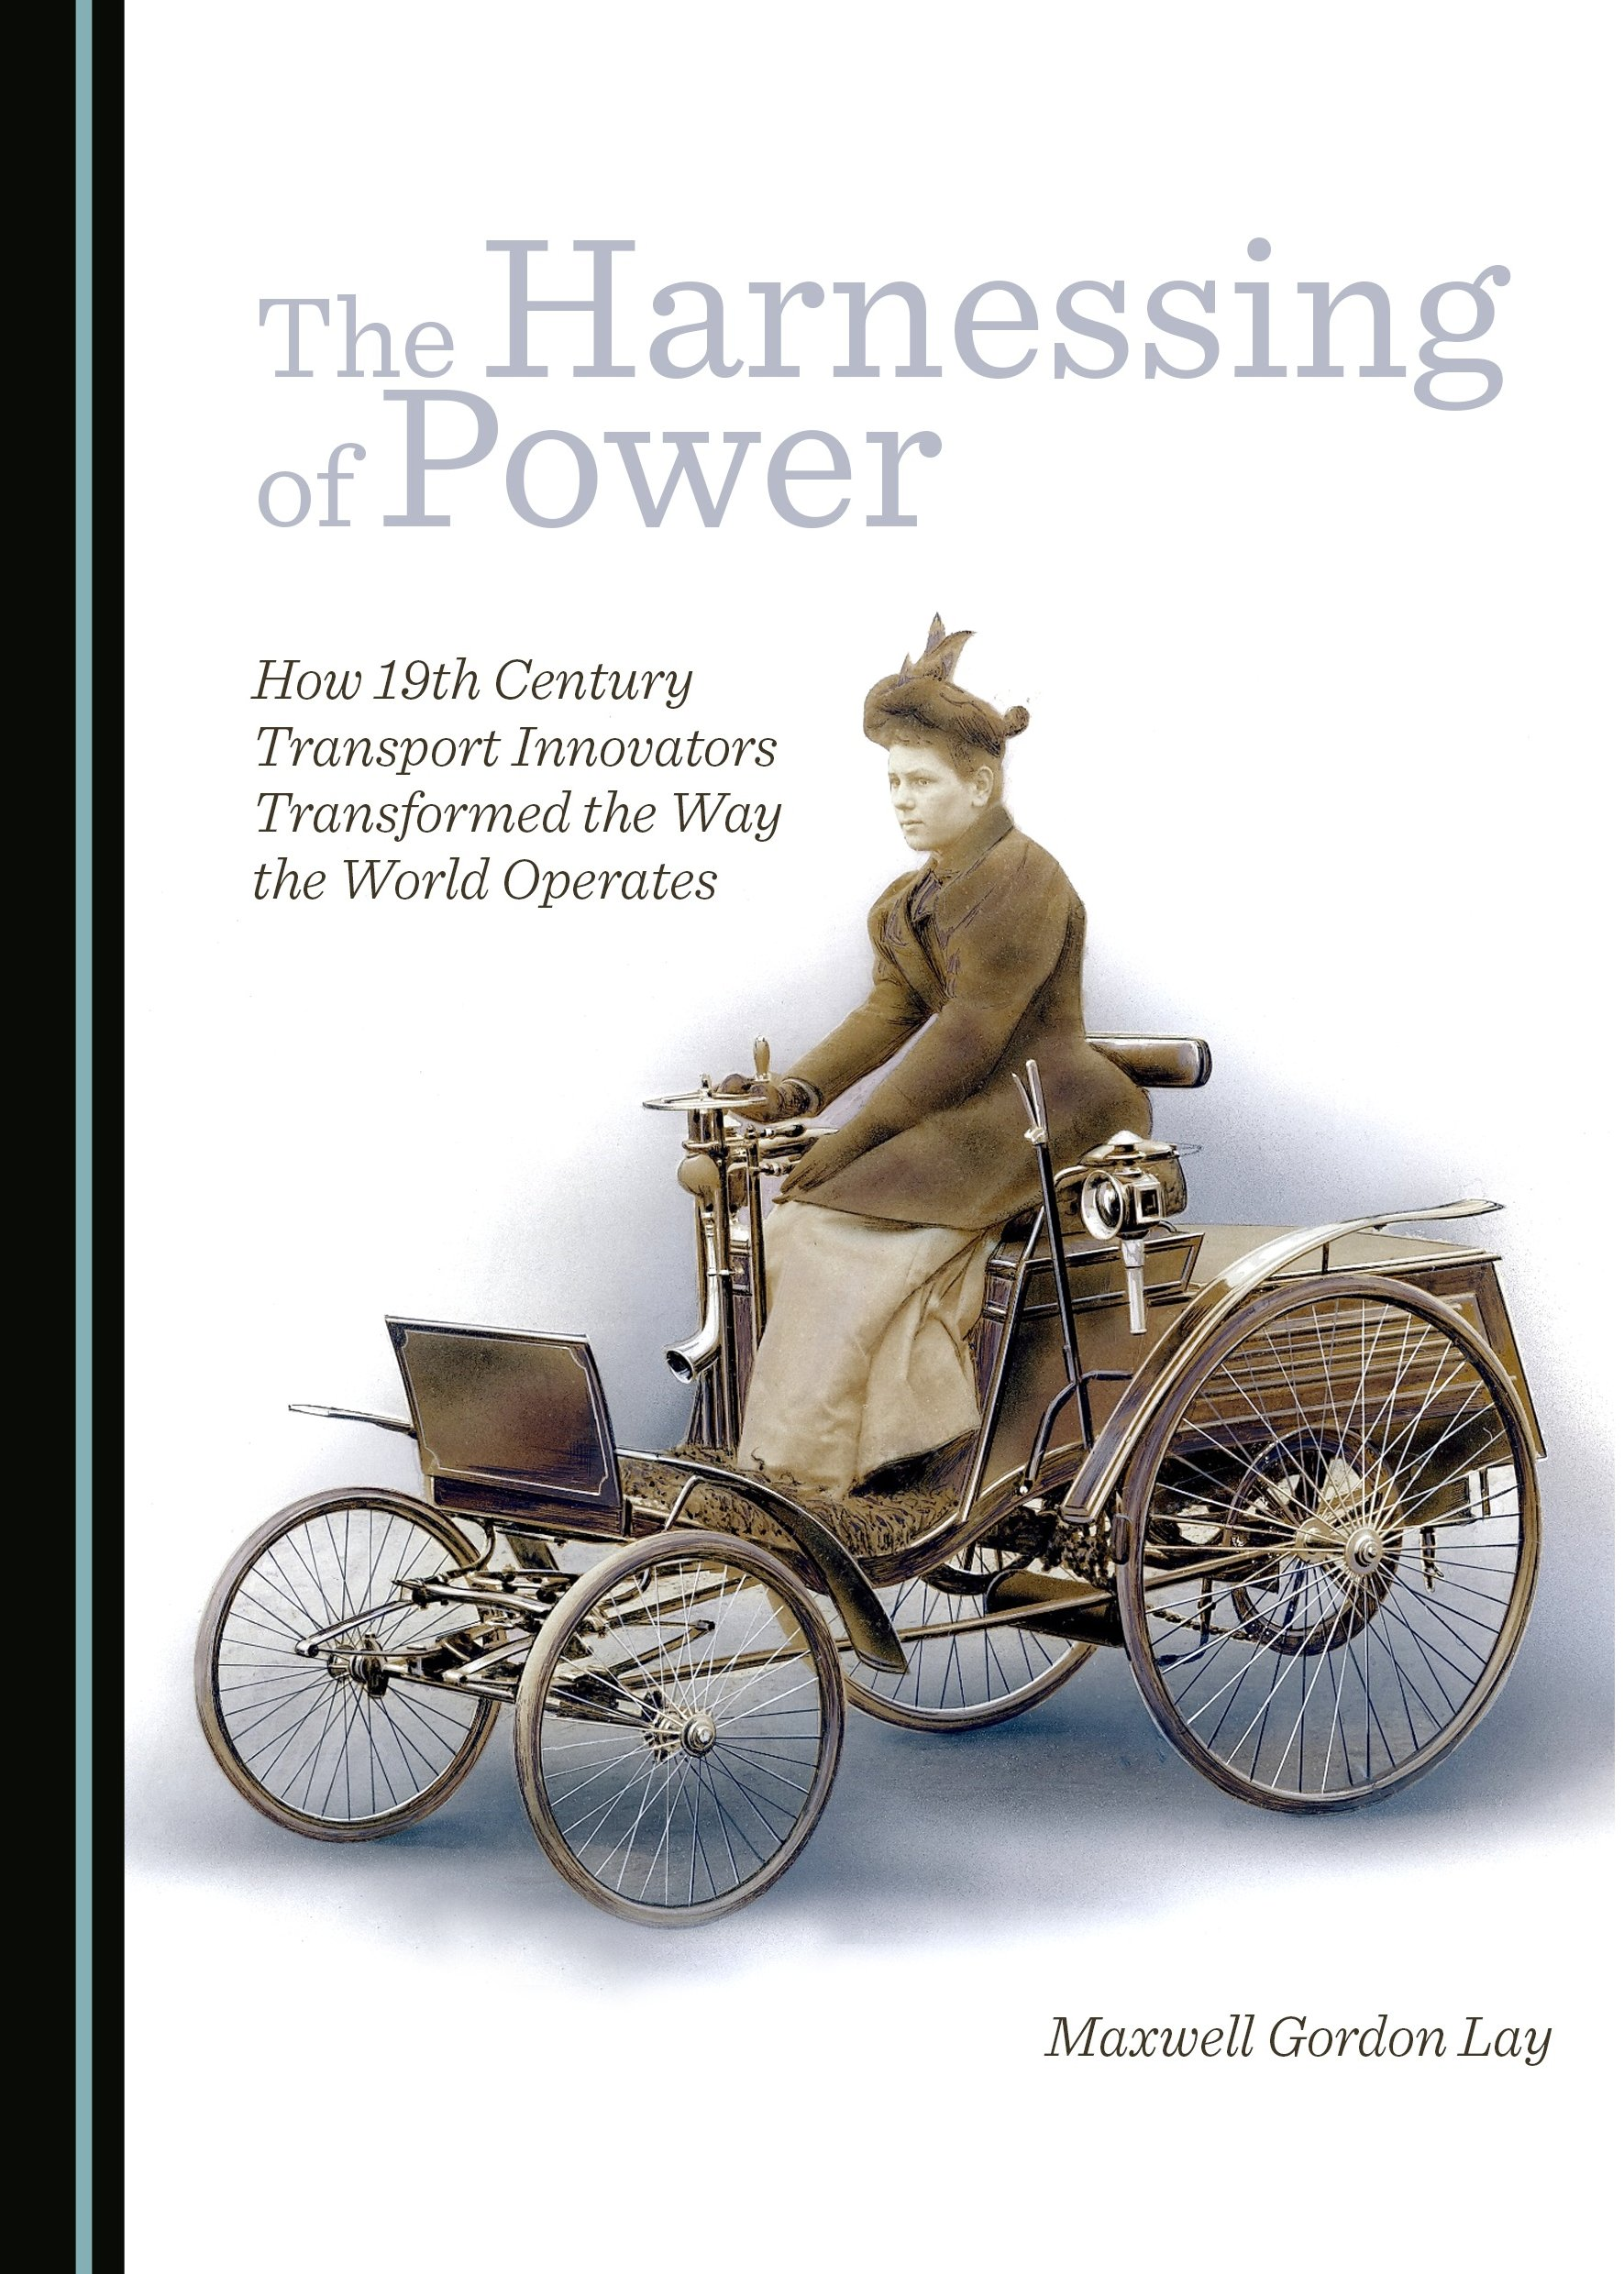 The Harnessing of Power: How 19th Century Transport Innovators Transformed the Way the World Operates